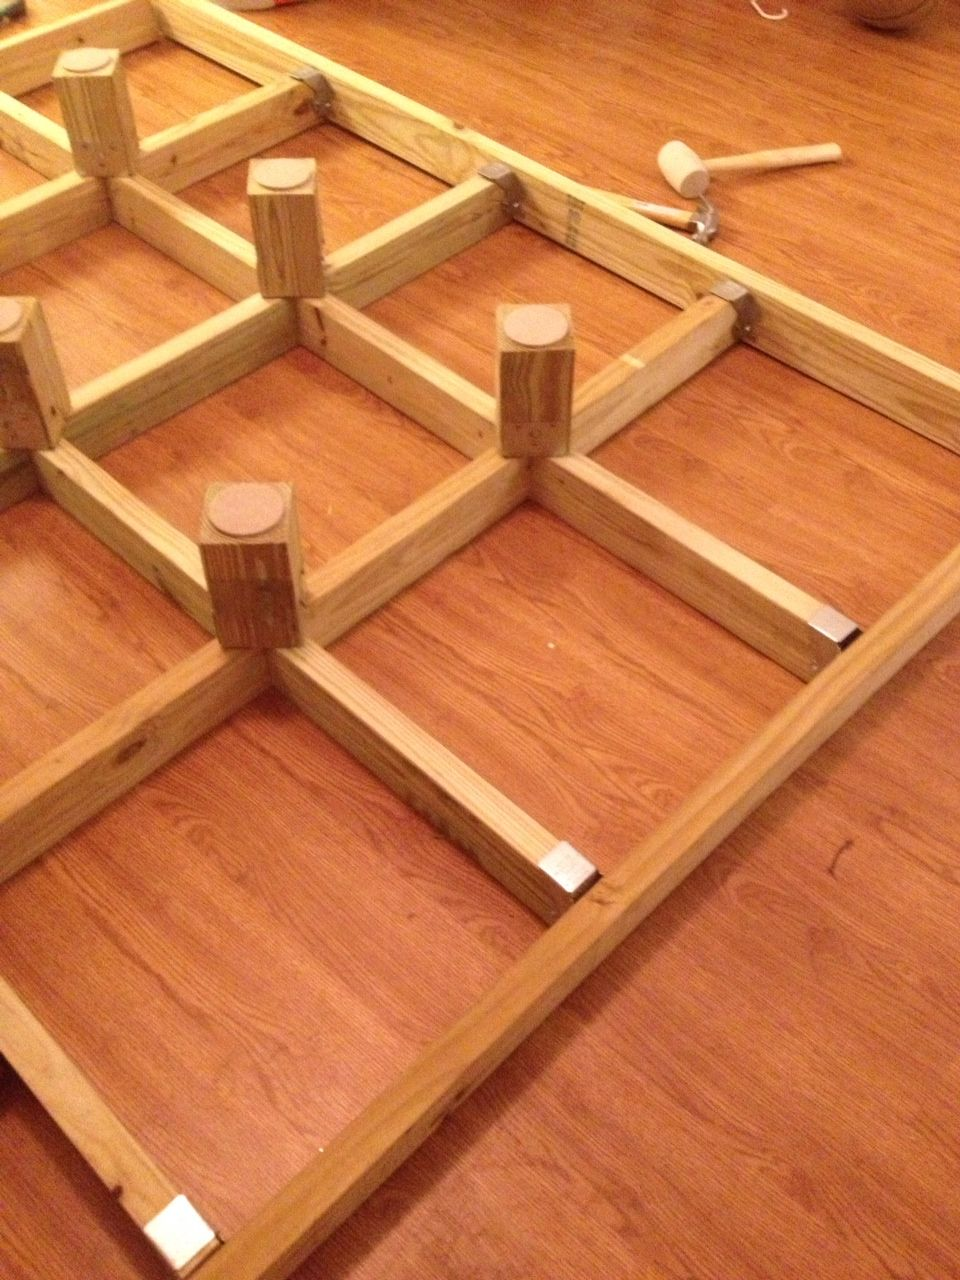 This Is The Platform Where The Box Springs Will Lay O